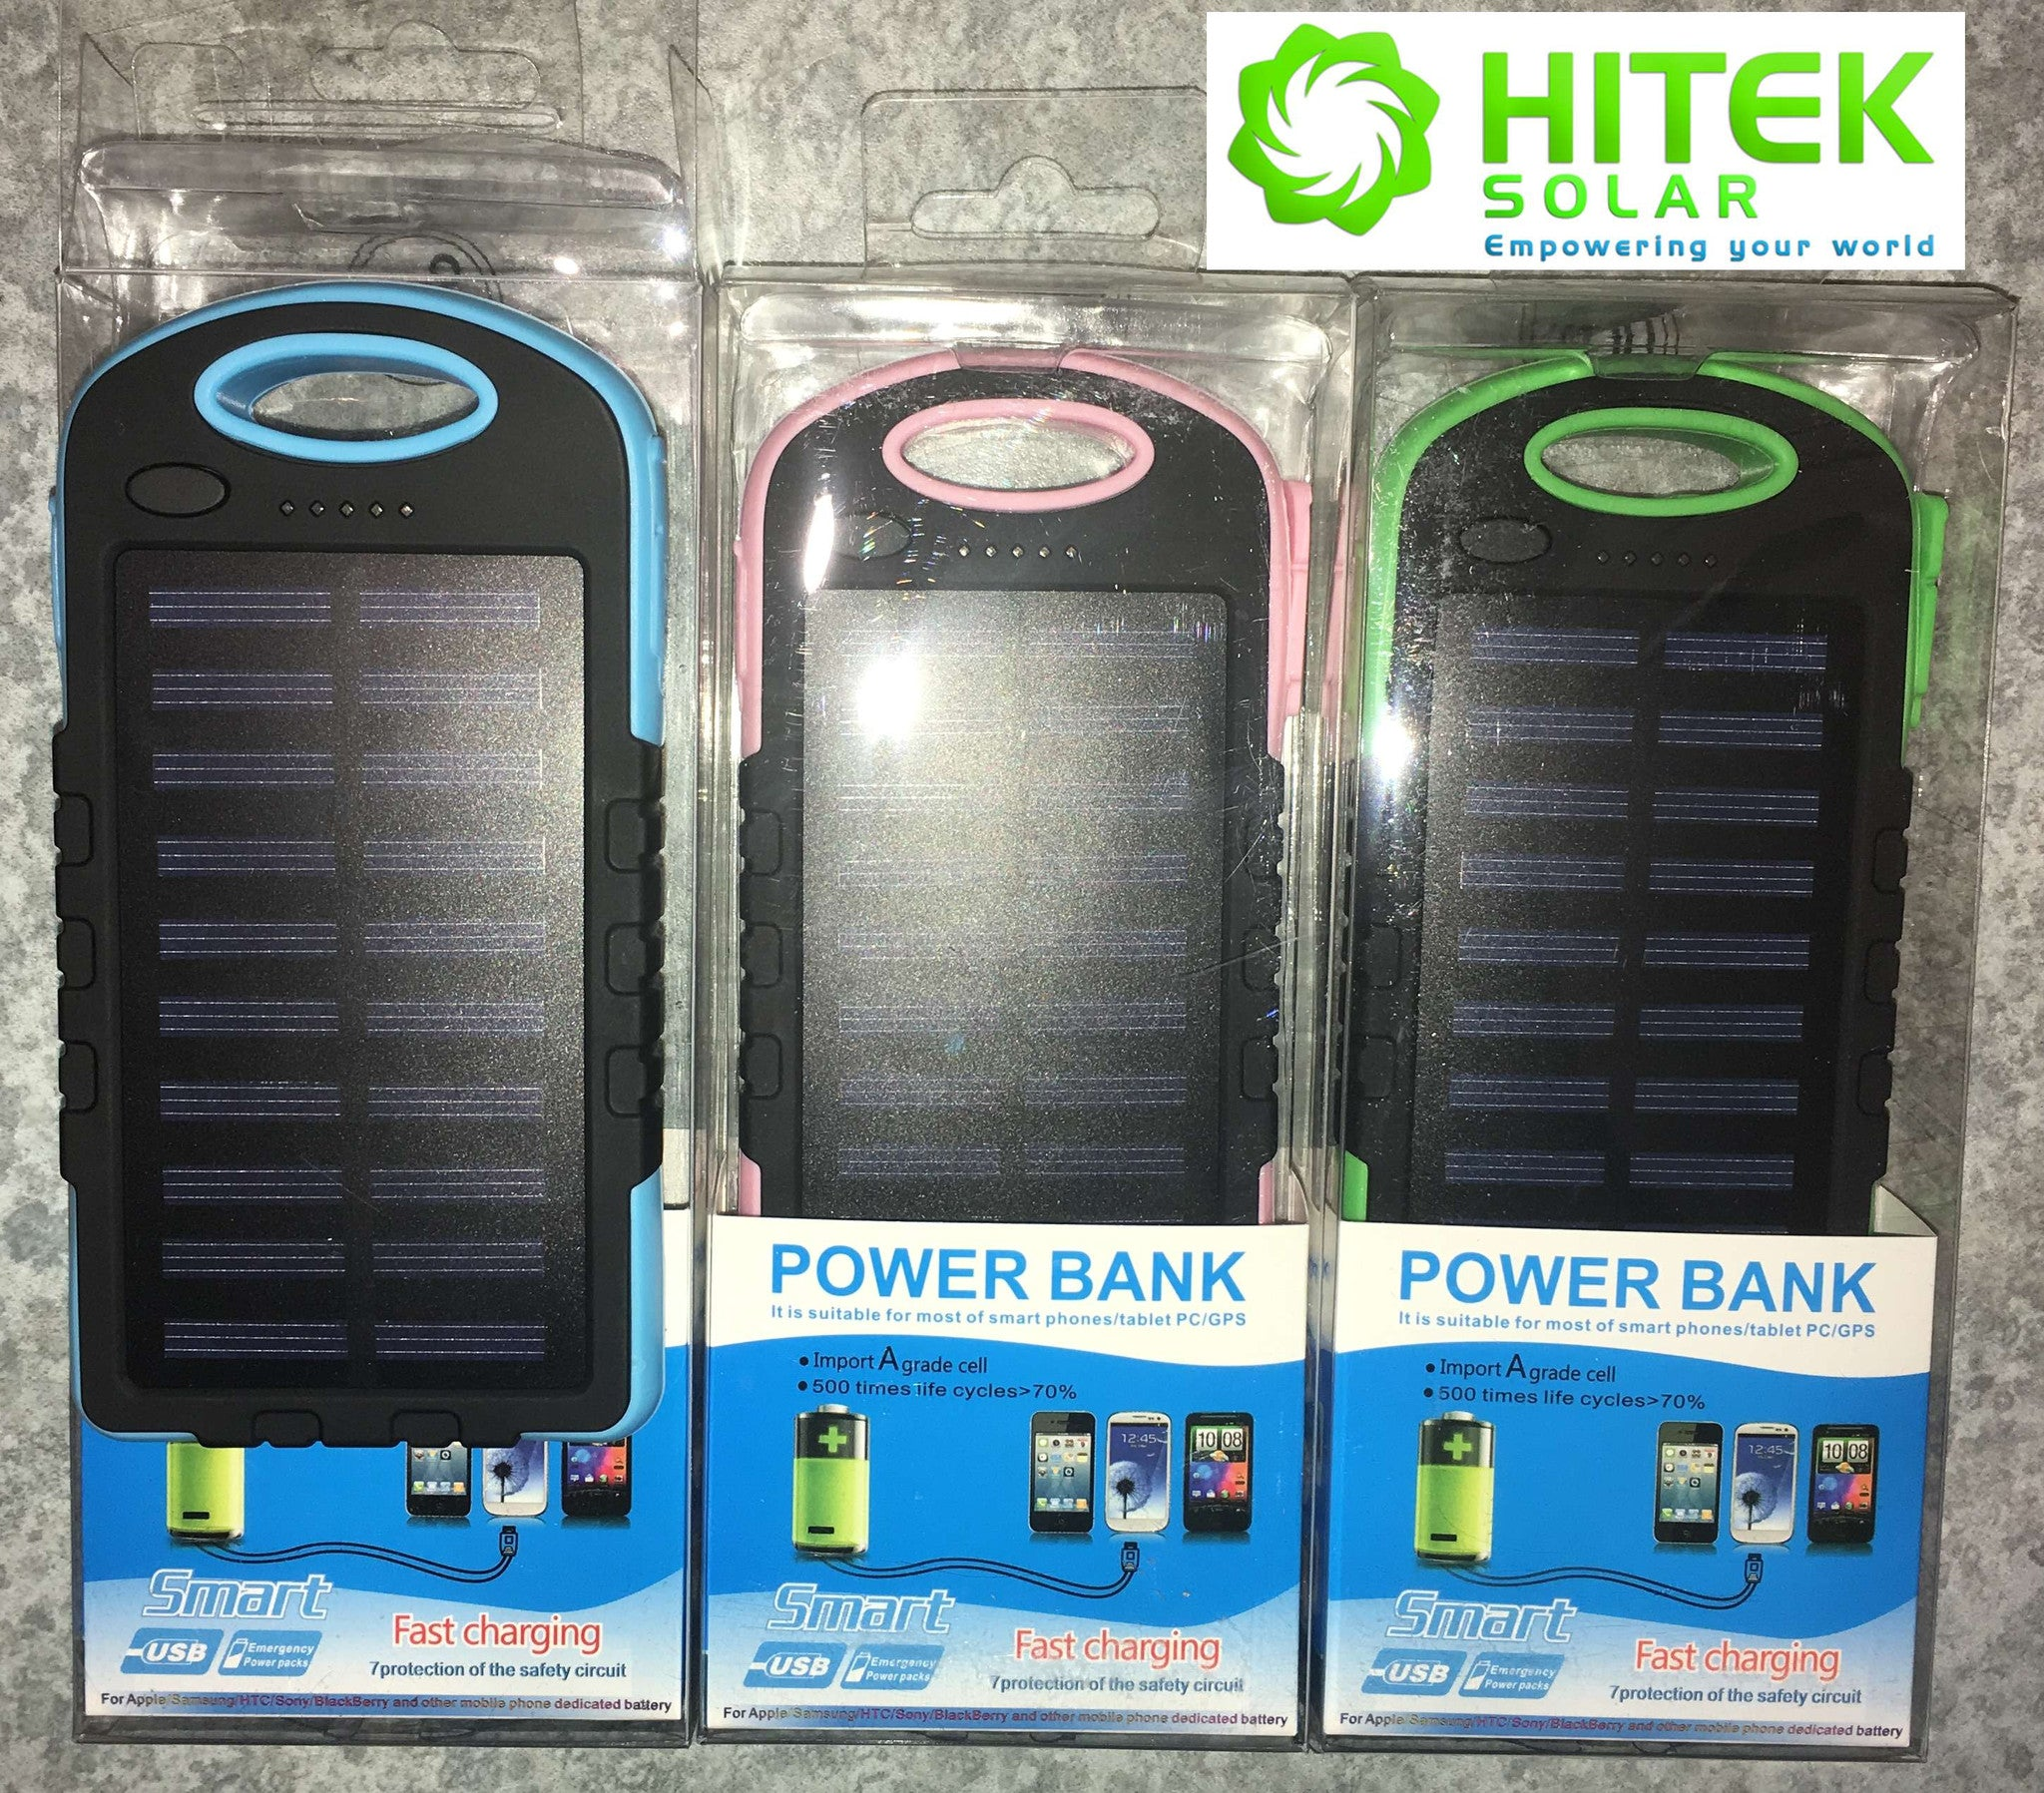 Hitek Solar Power Bank 8000mAh with LED flood light torch